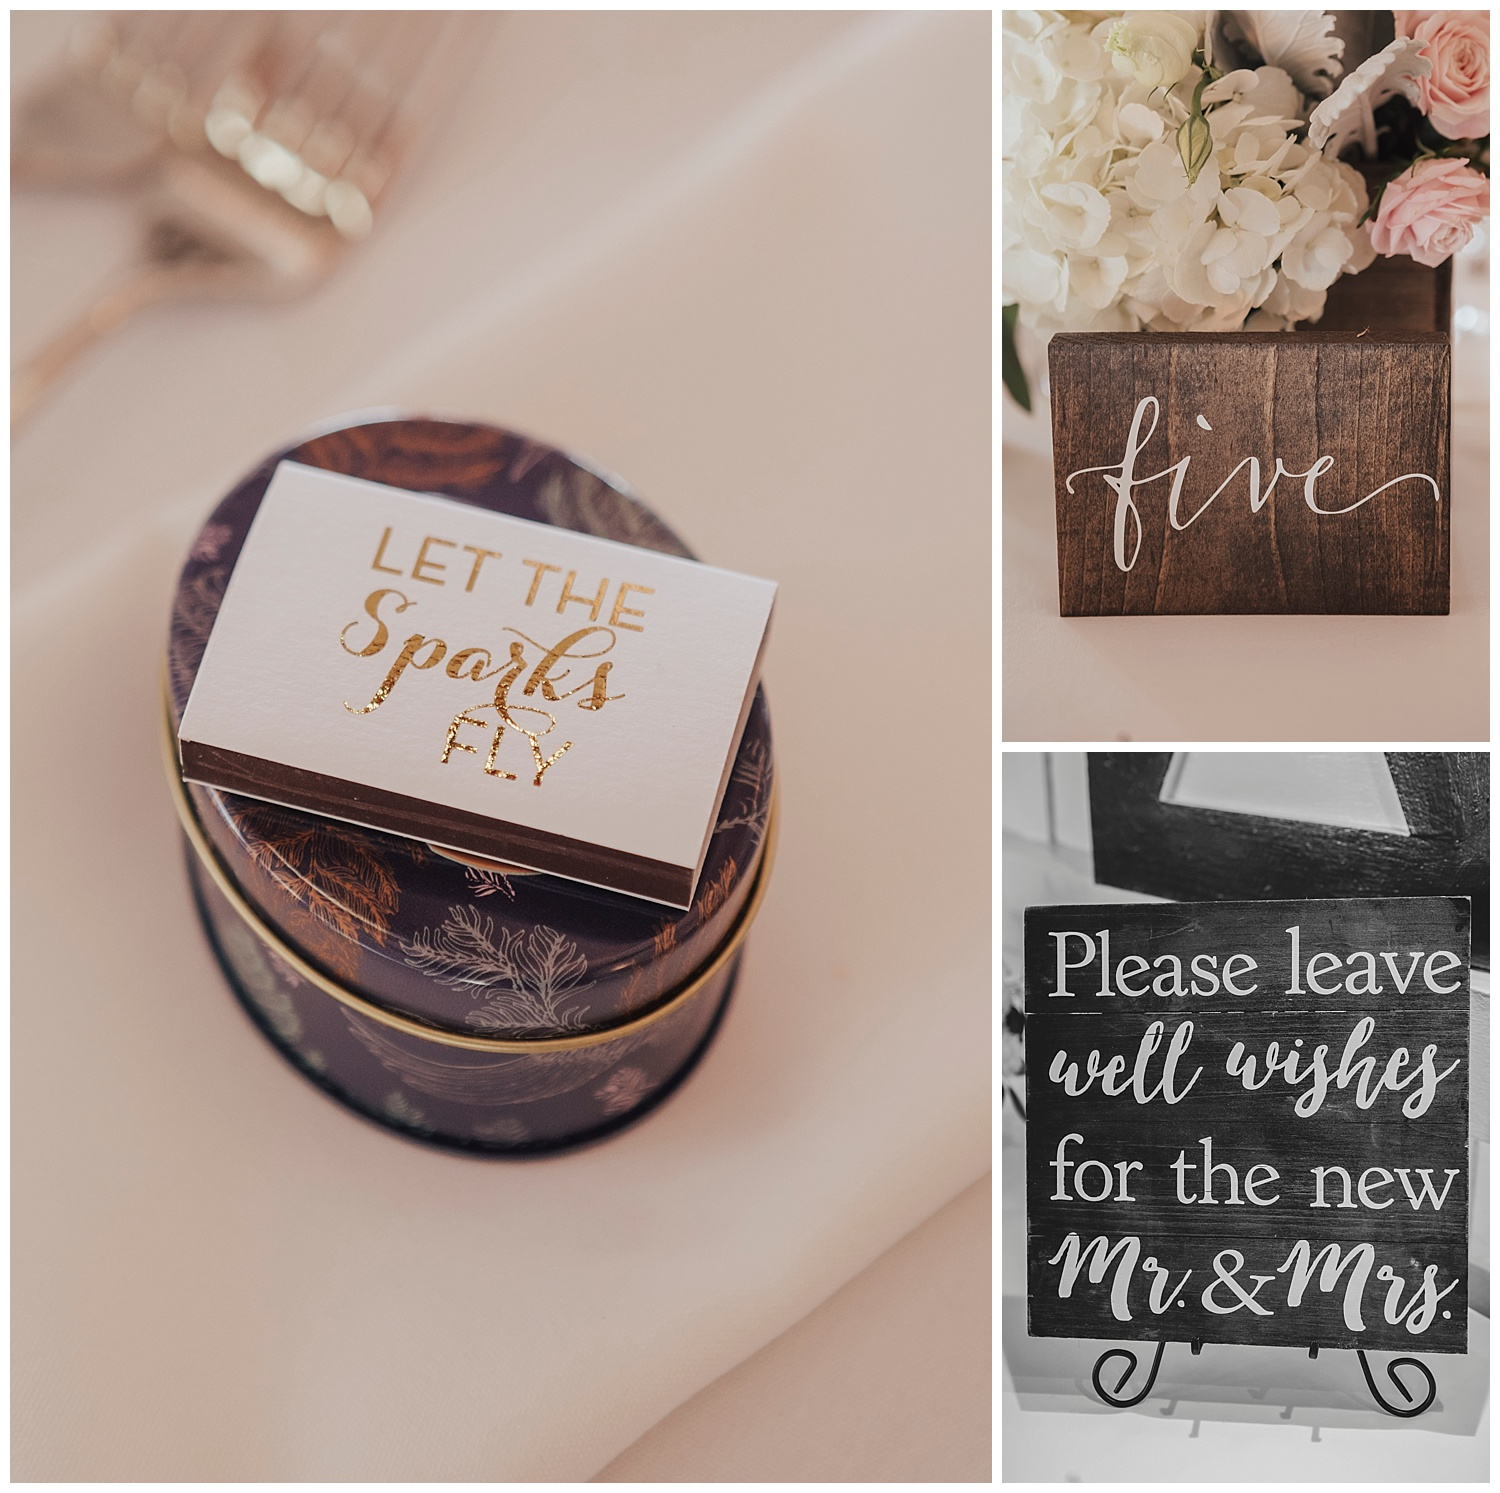 wedding-favors-mission-ranch-carmel-carol-oliva-photography.jpg